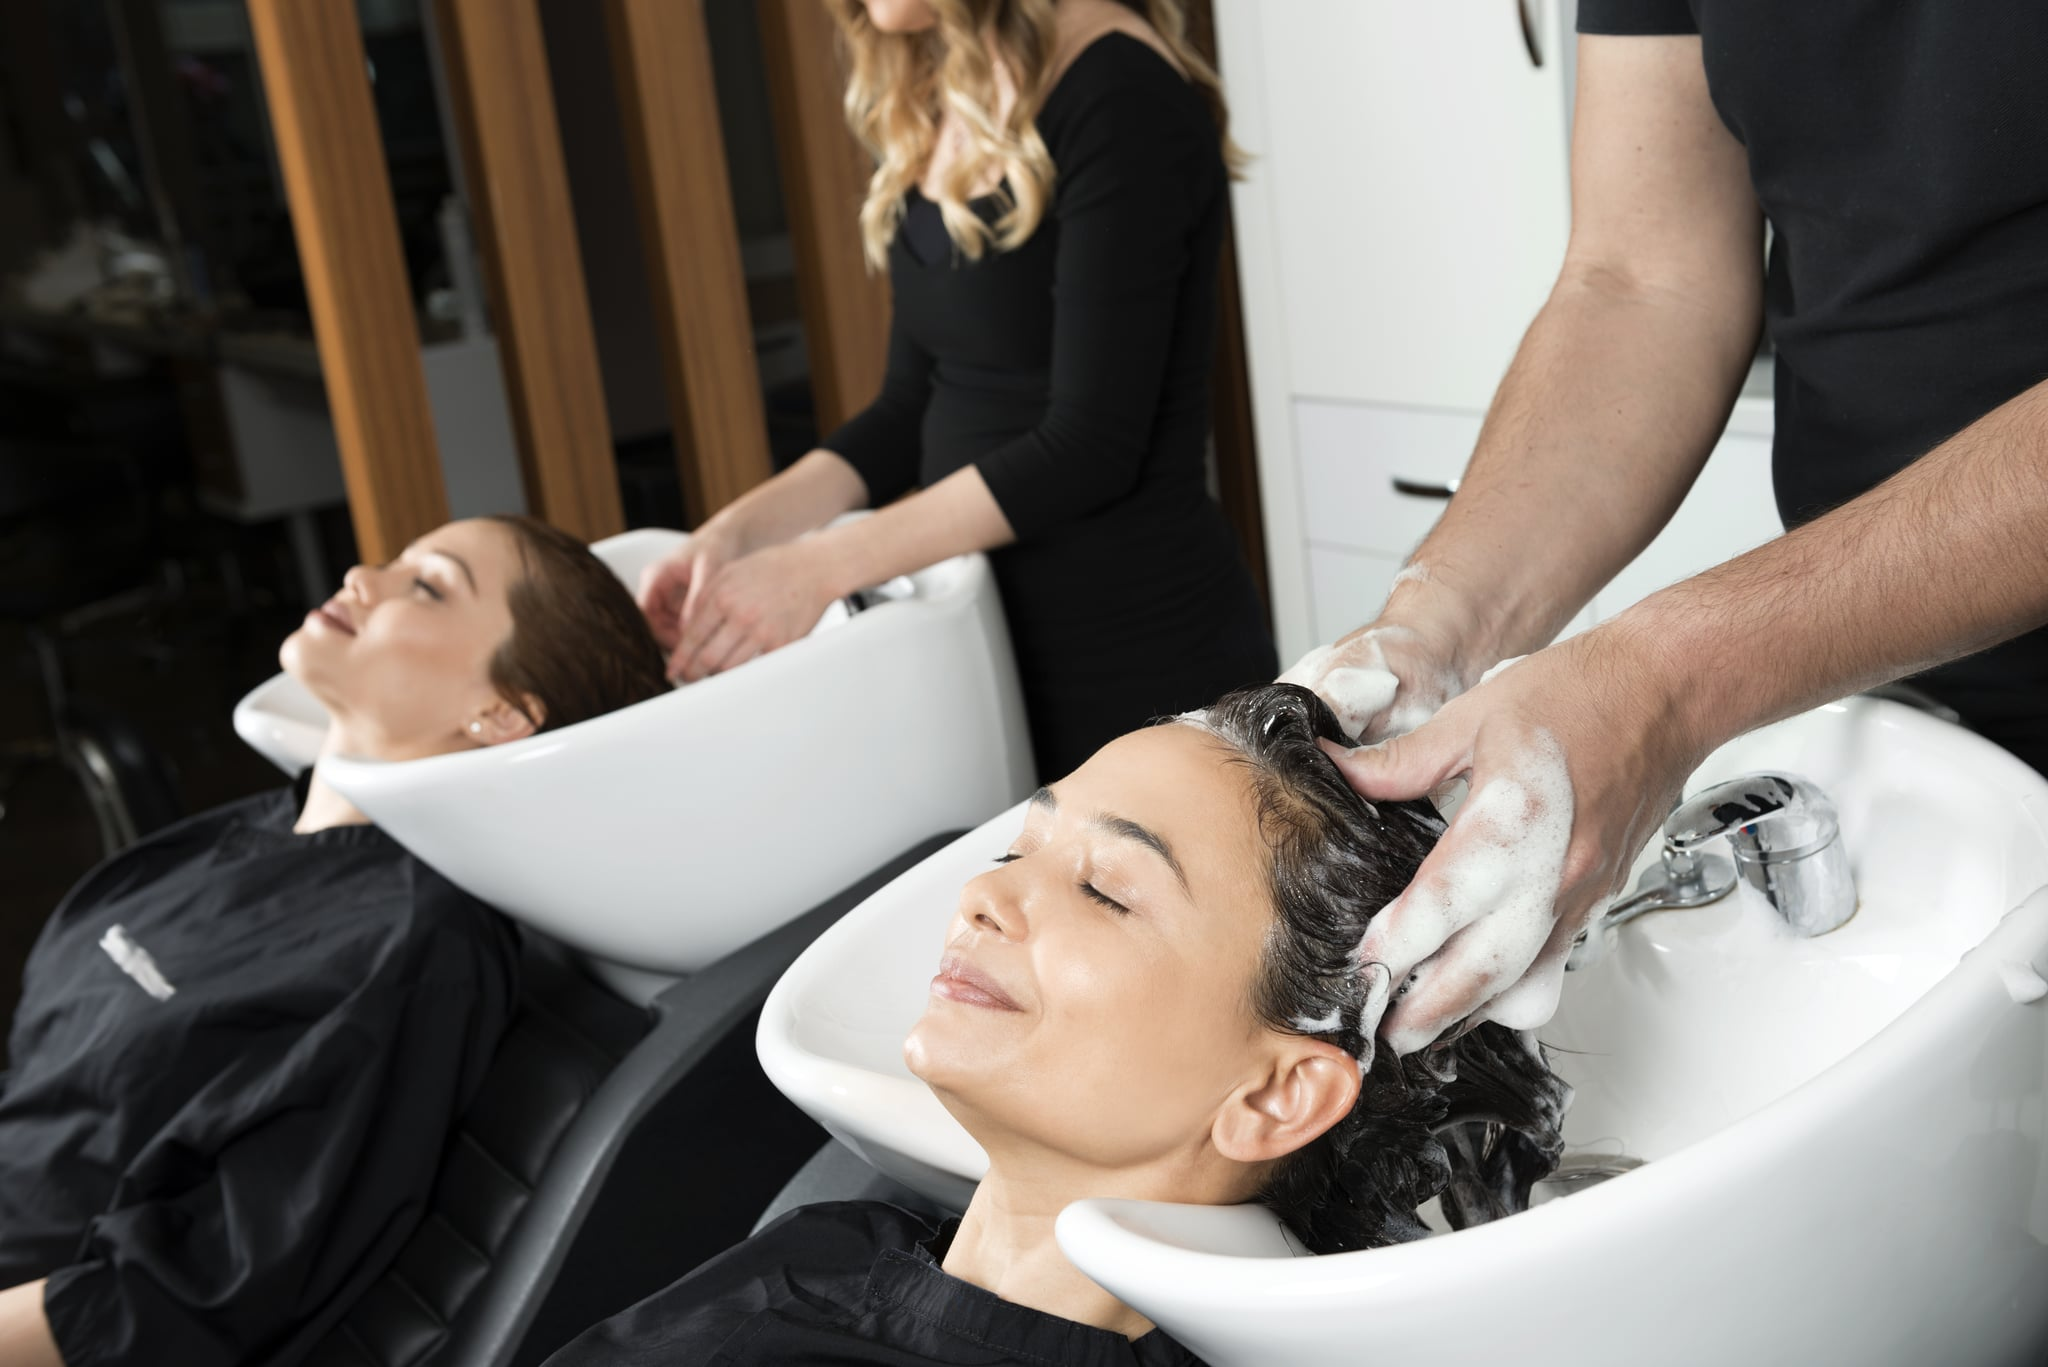 Hair washing section of a hairdresser's salon where two women are having their hair washed.